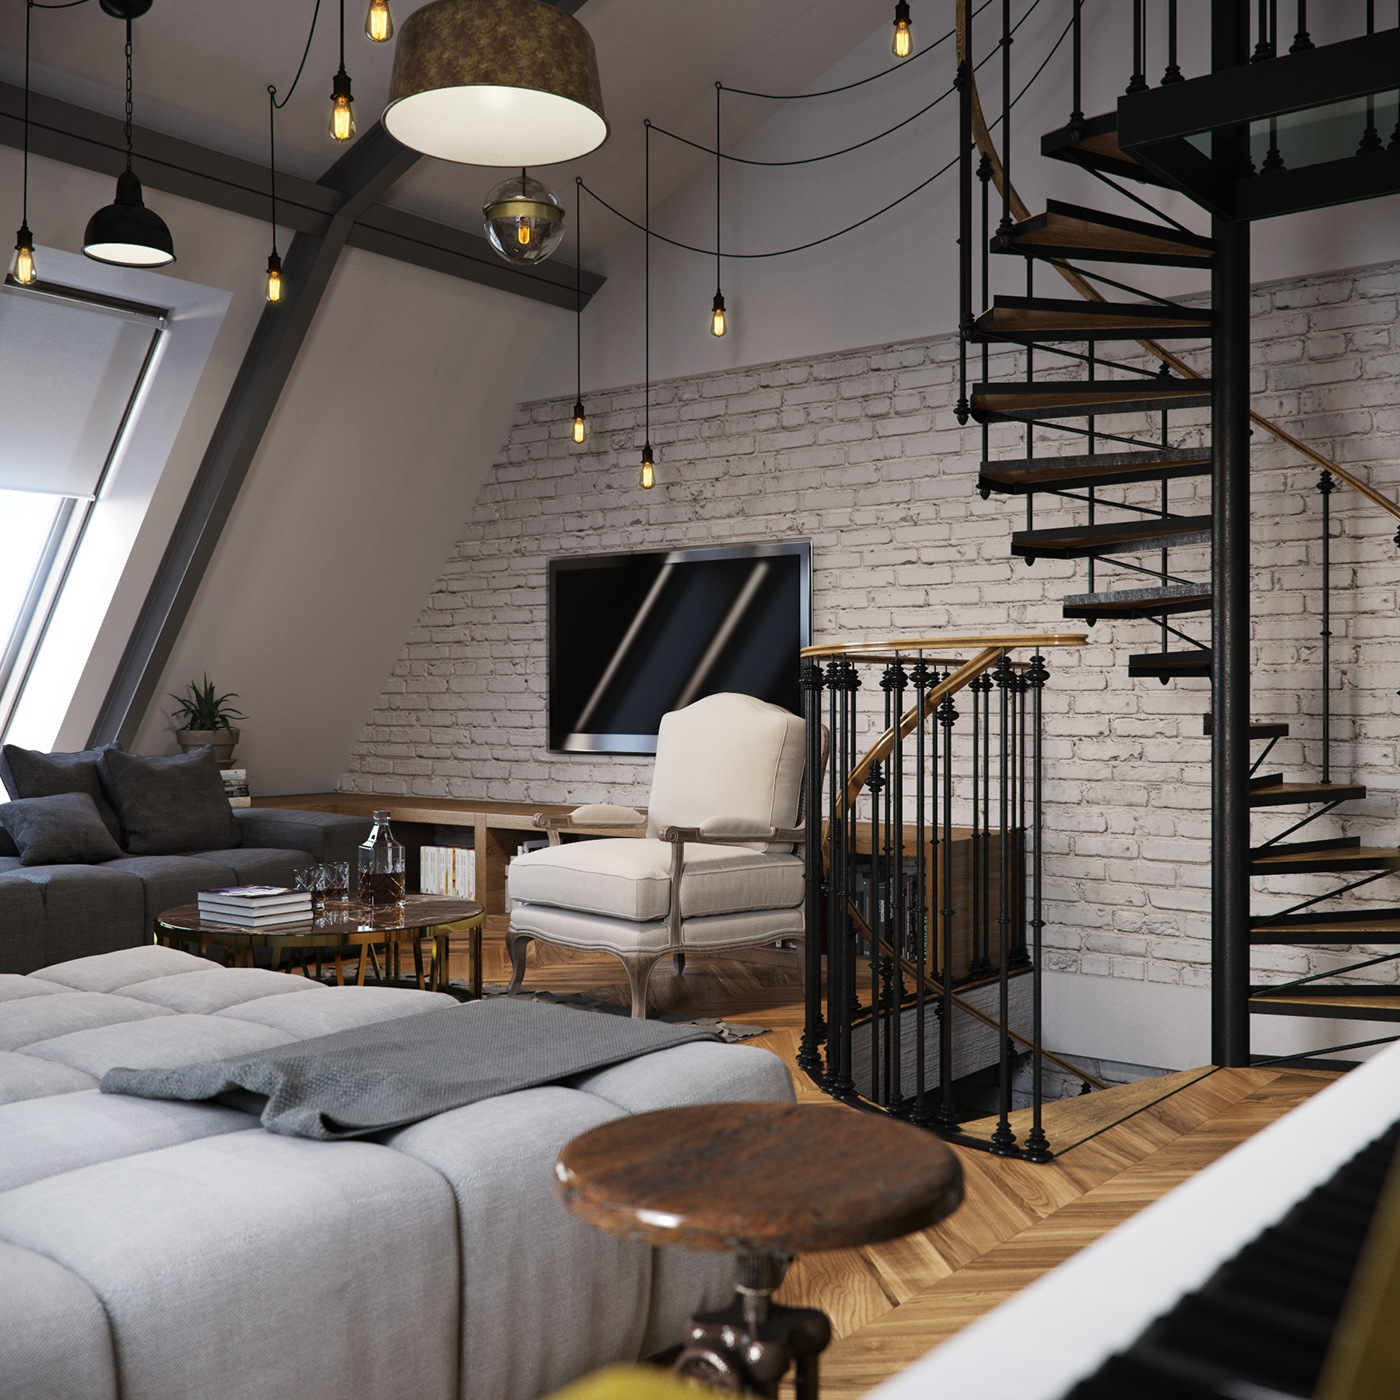 Loft Apartment: Three Dark Colored Loft Apartments With Exposed Brick Walls